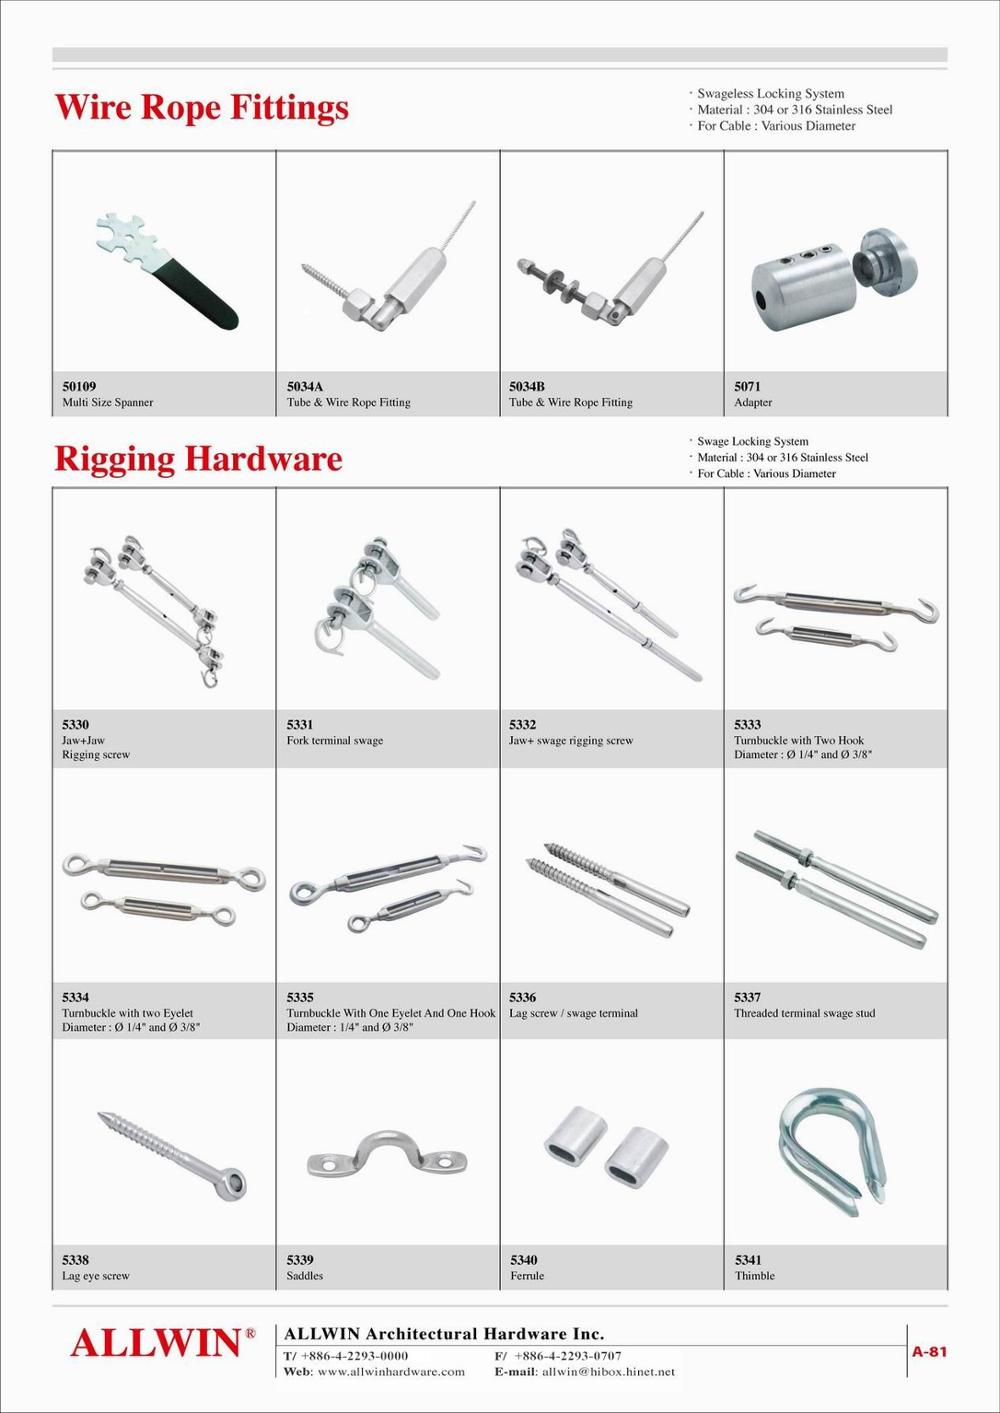 Stainless Steel Rigging Hardware Jaw Fork Swage Terminals Wire Rope ...